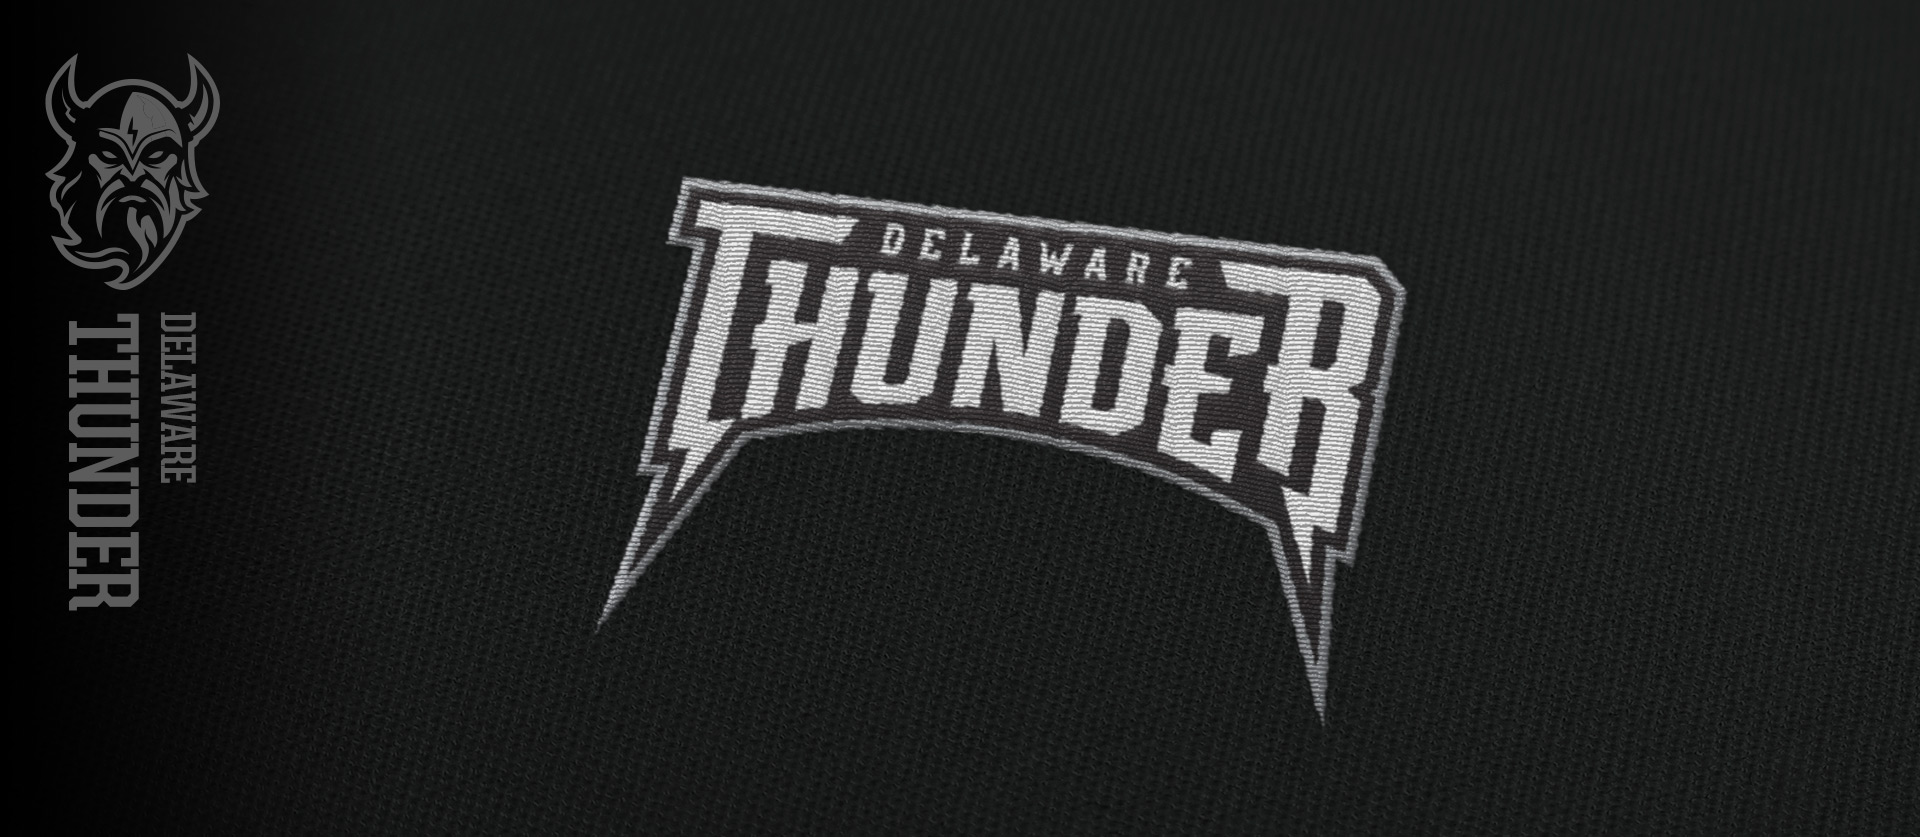 Delaware Thunder Uniforms Close-up Text federal hockey league team design